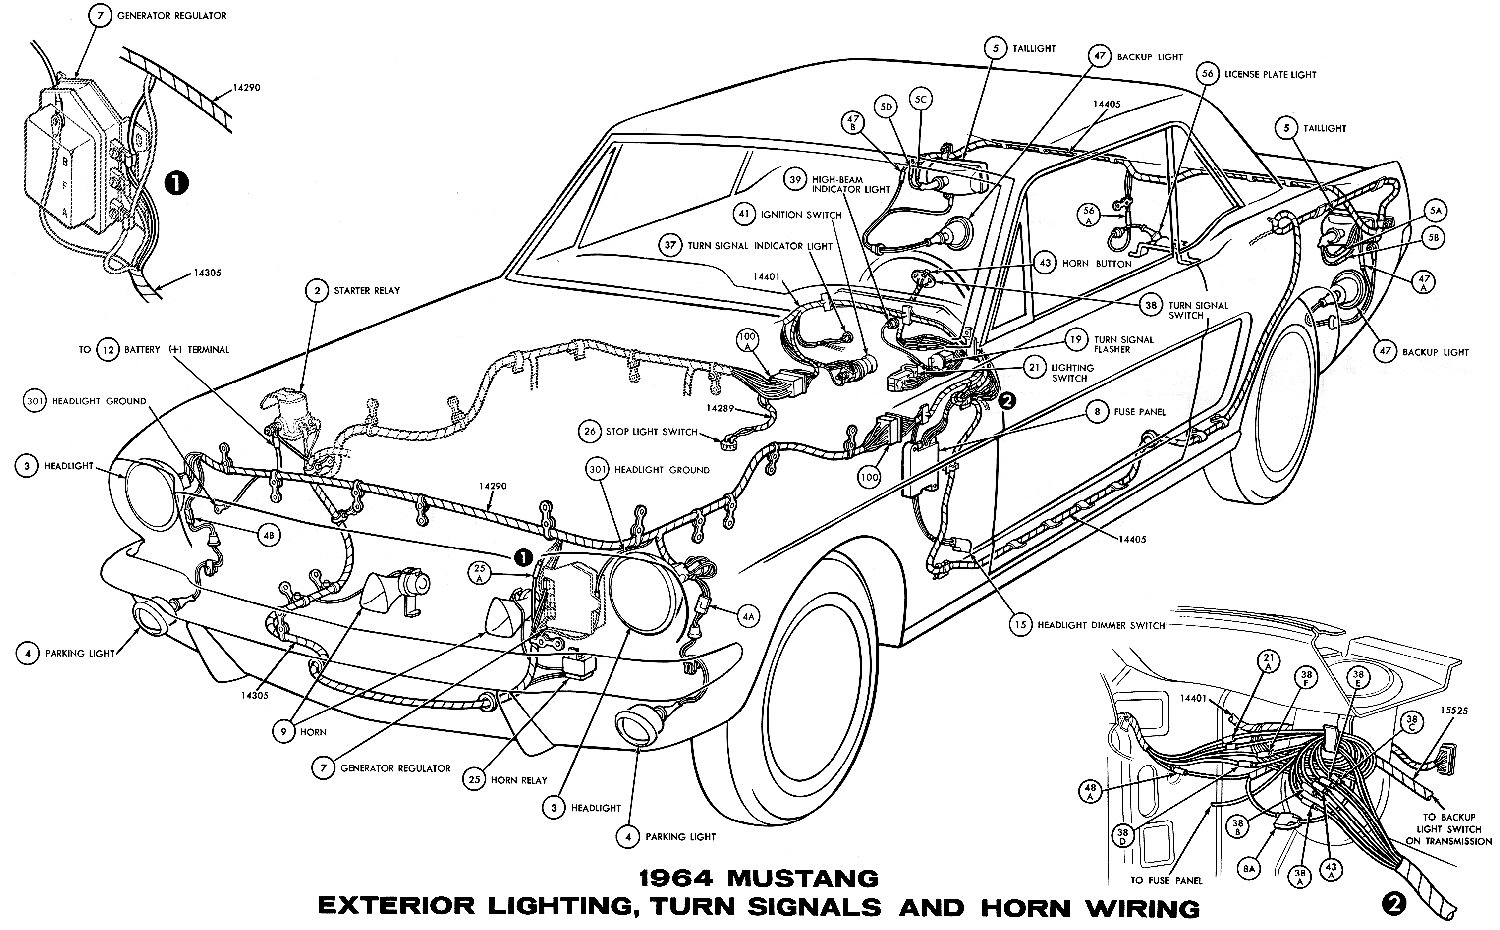 1964 Mustang Wiring Diagrams Average Joe Restoration Tail Light Diagram Exterior Lighting Turn Signals And Horns Pictorial Or Schematic